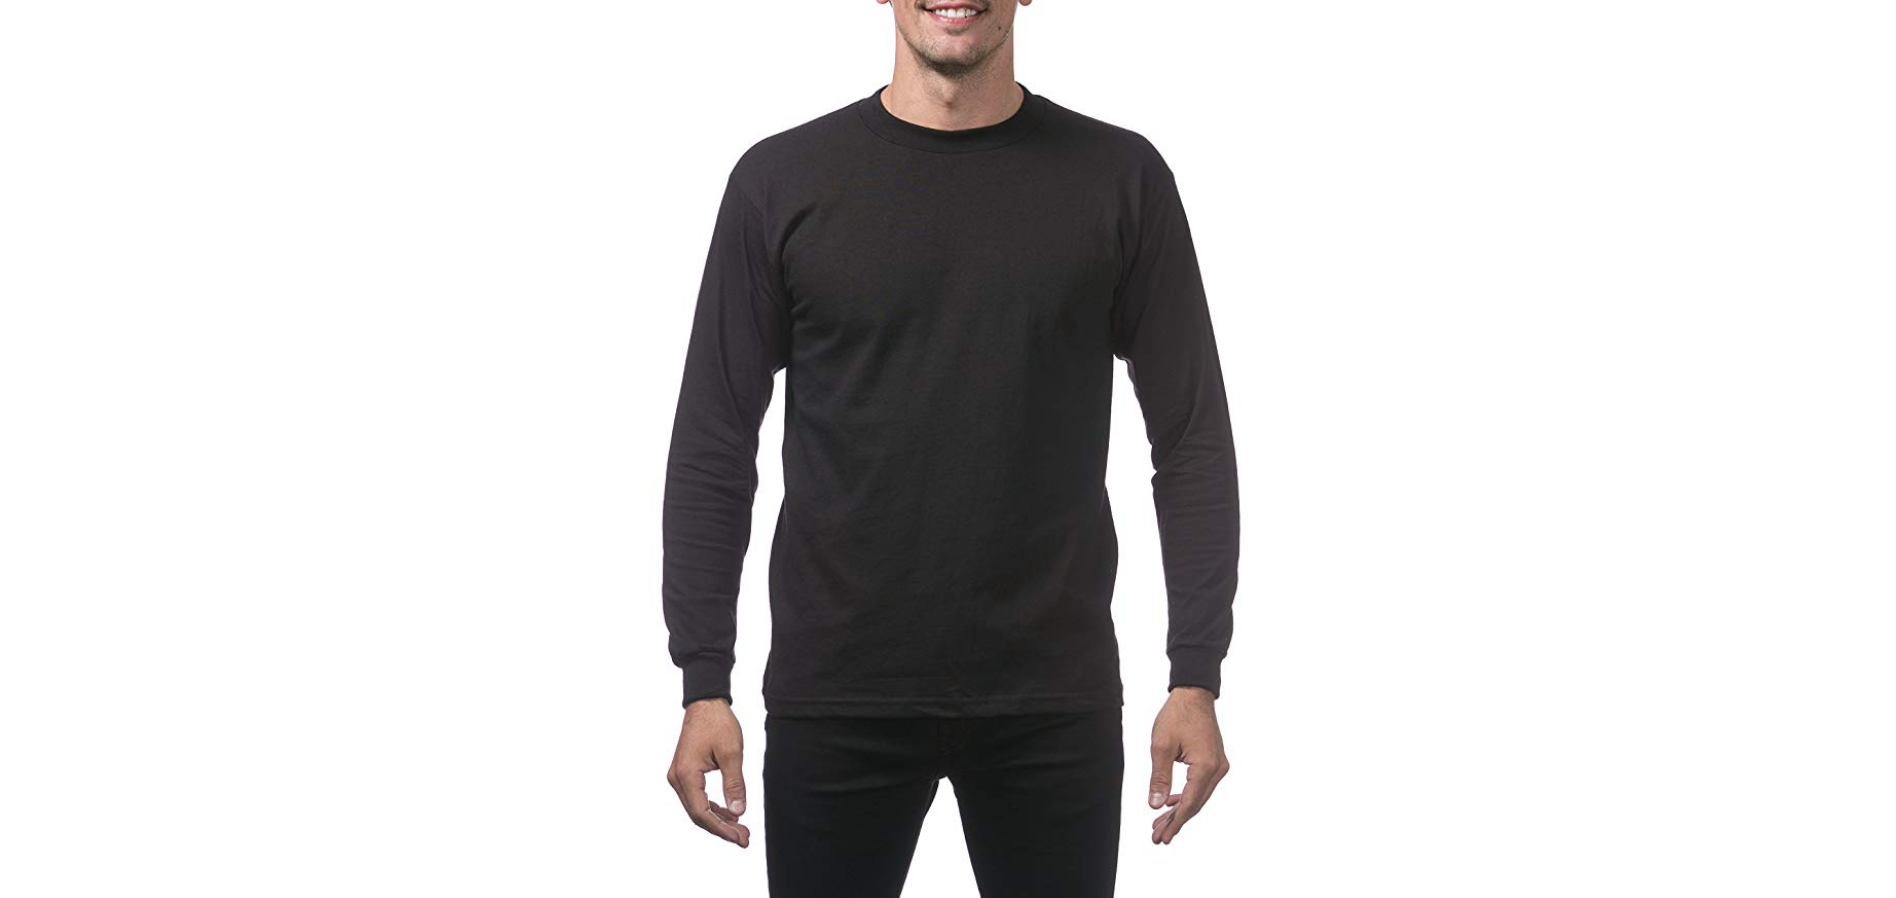 80253ca75470 Best Undershirts for Men | Base Layers for Winter